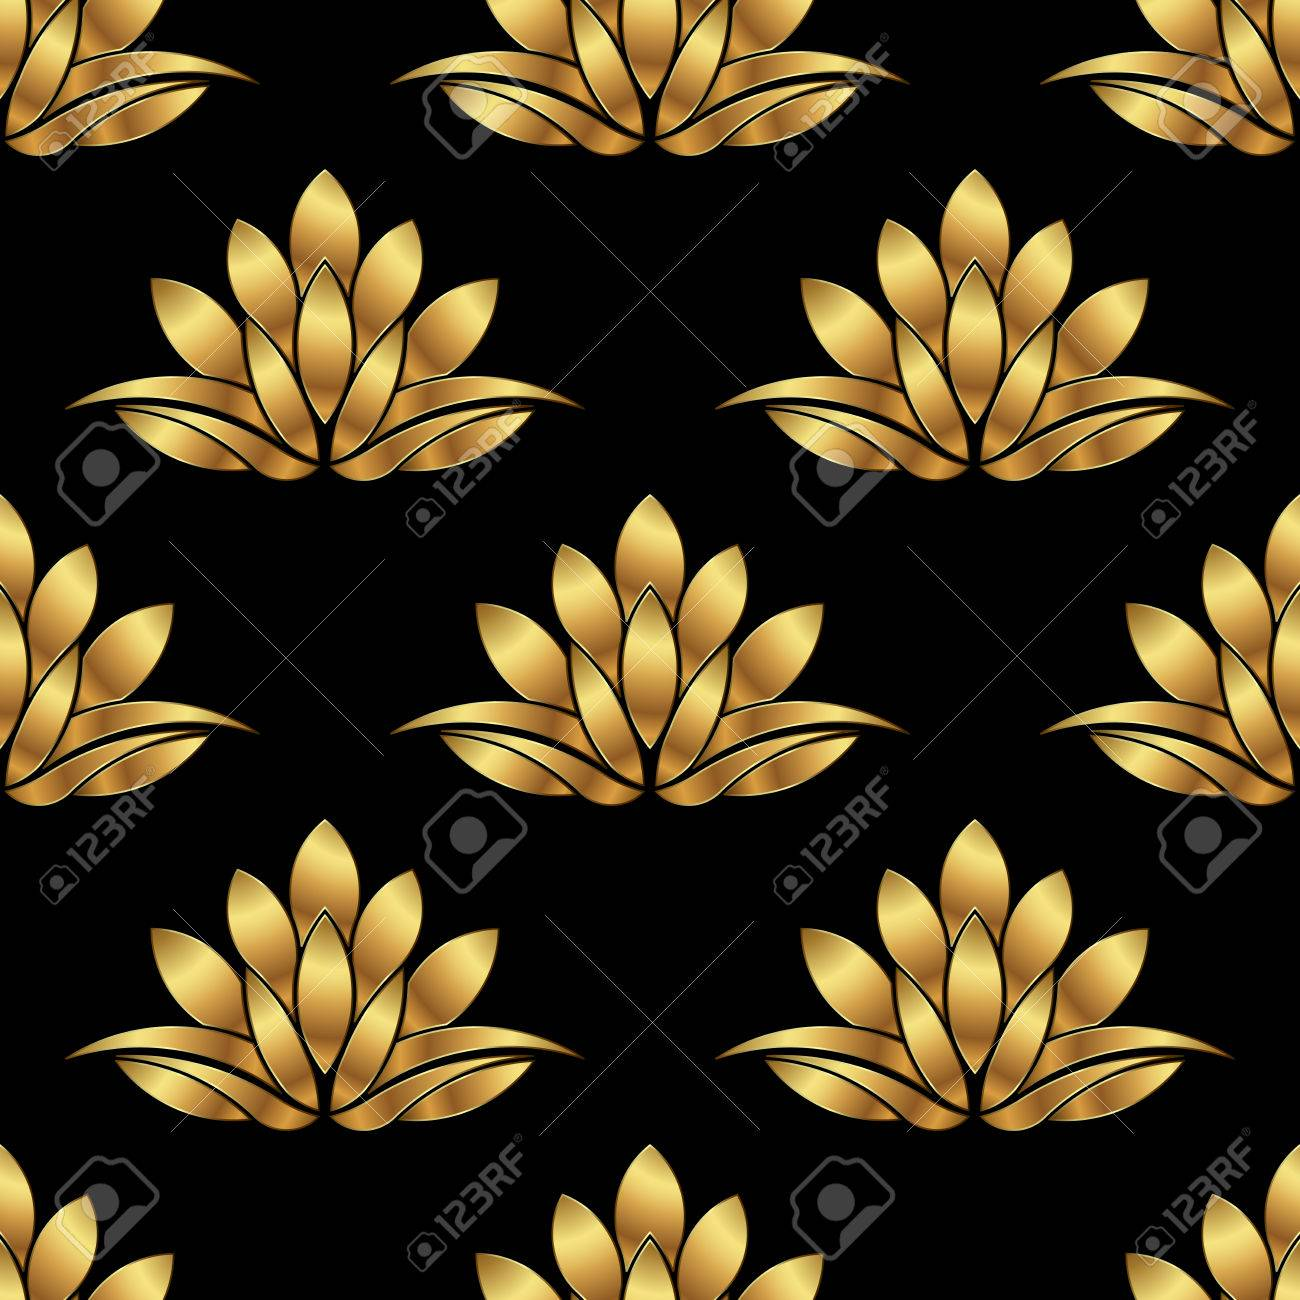 Golden Lotus Flower Pattern Background Vector Graphic Design